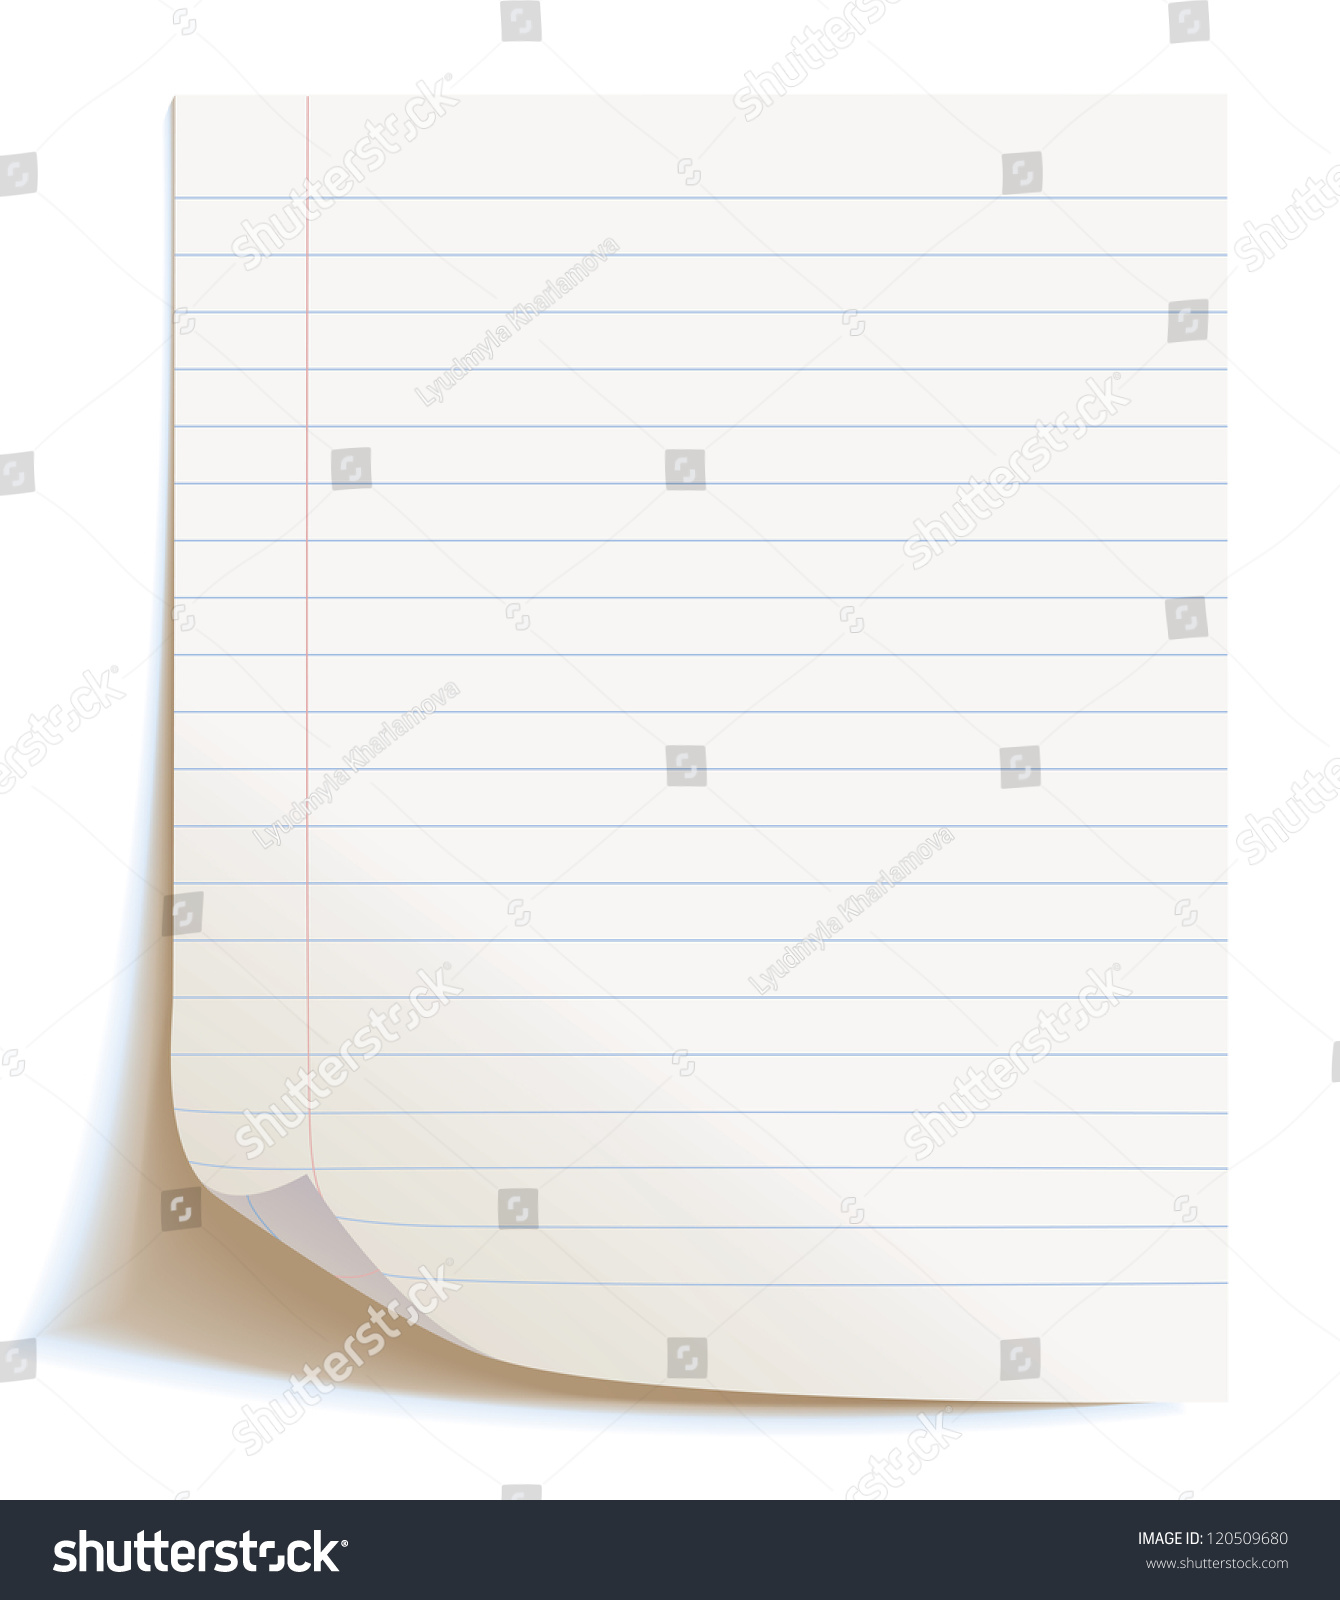 Blank Worksheet Exercise Book Isolated On White